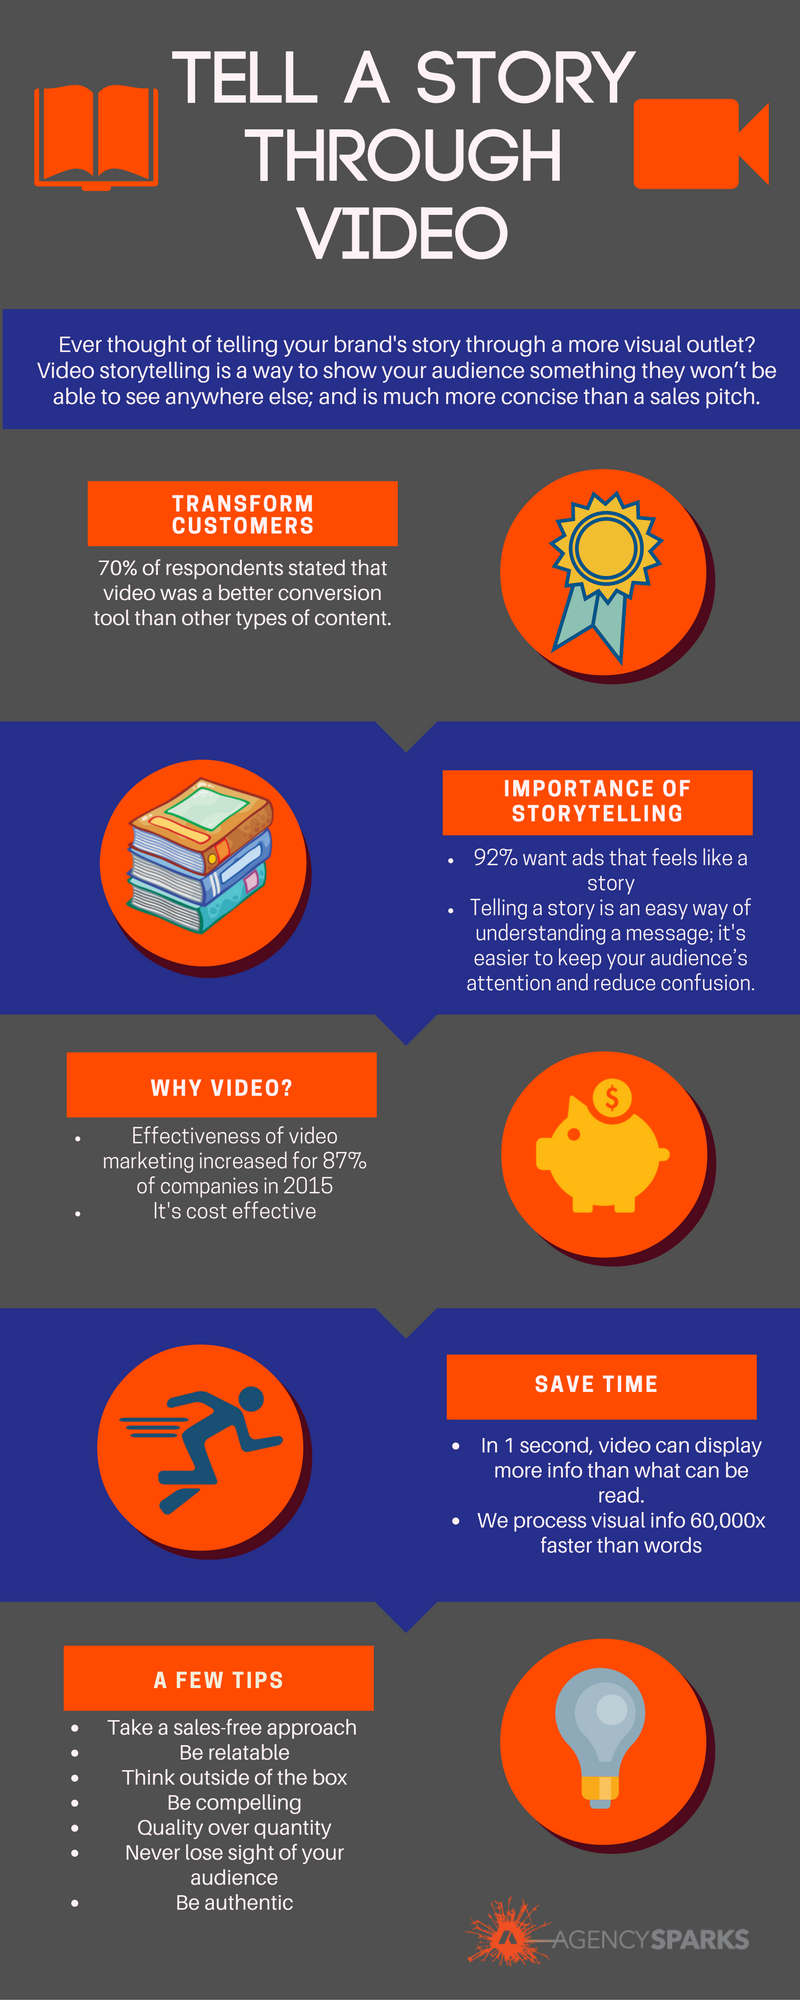 Video Marketing Infographic - AgencySparks     Video marketing has become one of the most effective and inexpensive ways to promote a brand, but 92% of consumers want advertising that feels like a story. Telling a story through video is much more concise than a sales pitch. 70% say that video is a better conversion tool than any other type of content. Video storytelling is also cost-effective, saves time,and reduces confusion among customers. Be authentic, compelling, and keep your audience in mind with a sales-free approach.Check out more tips for effective video visuals in the image above!